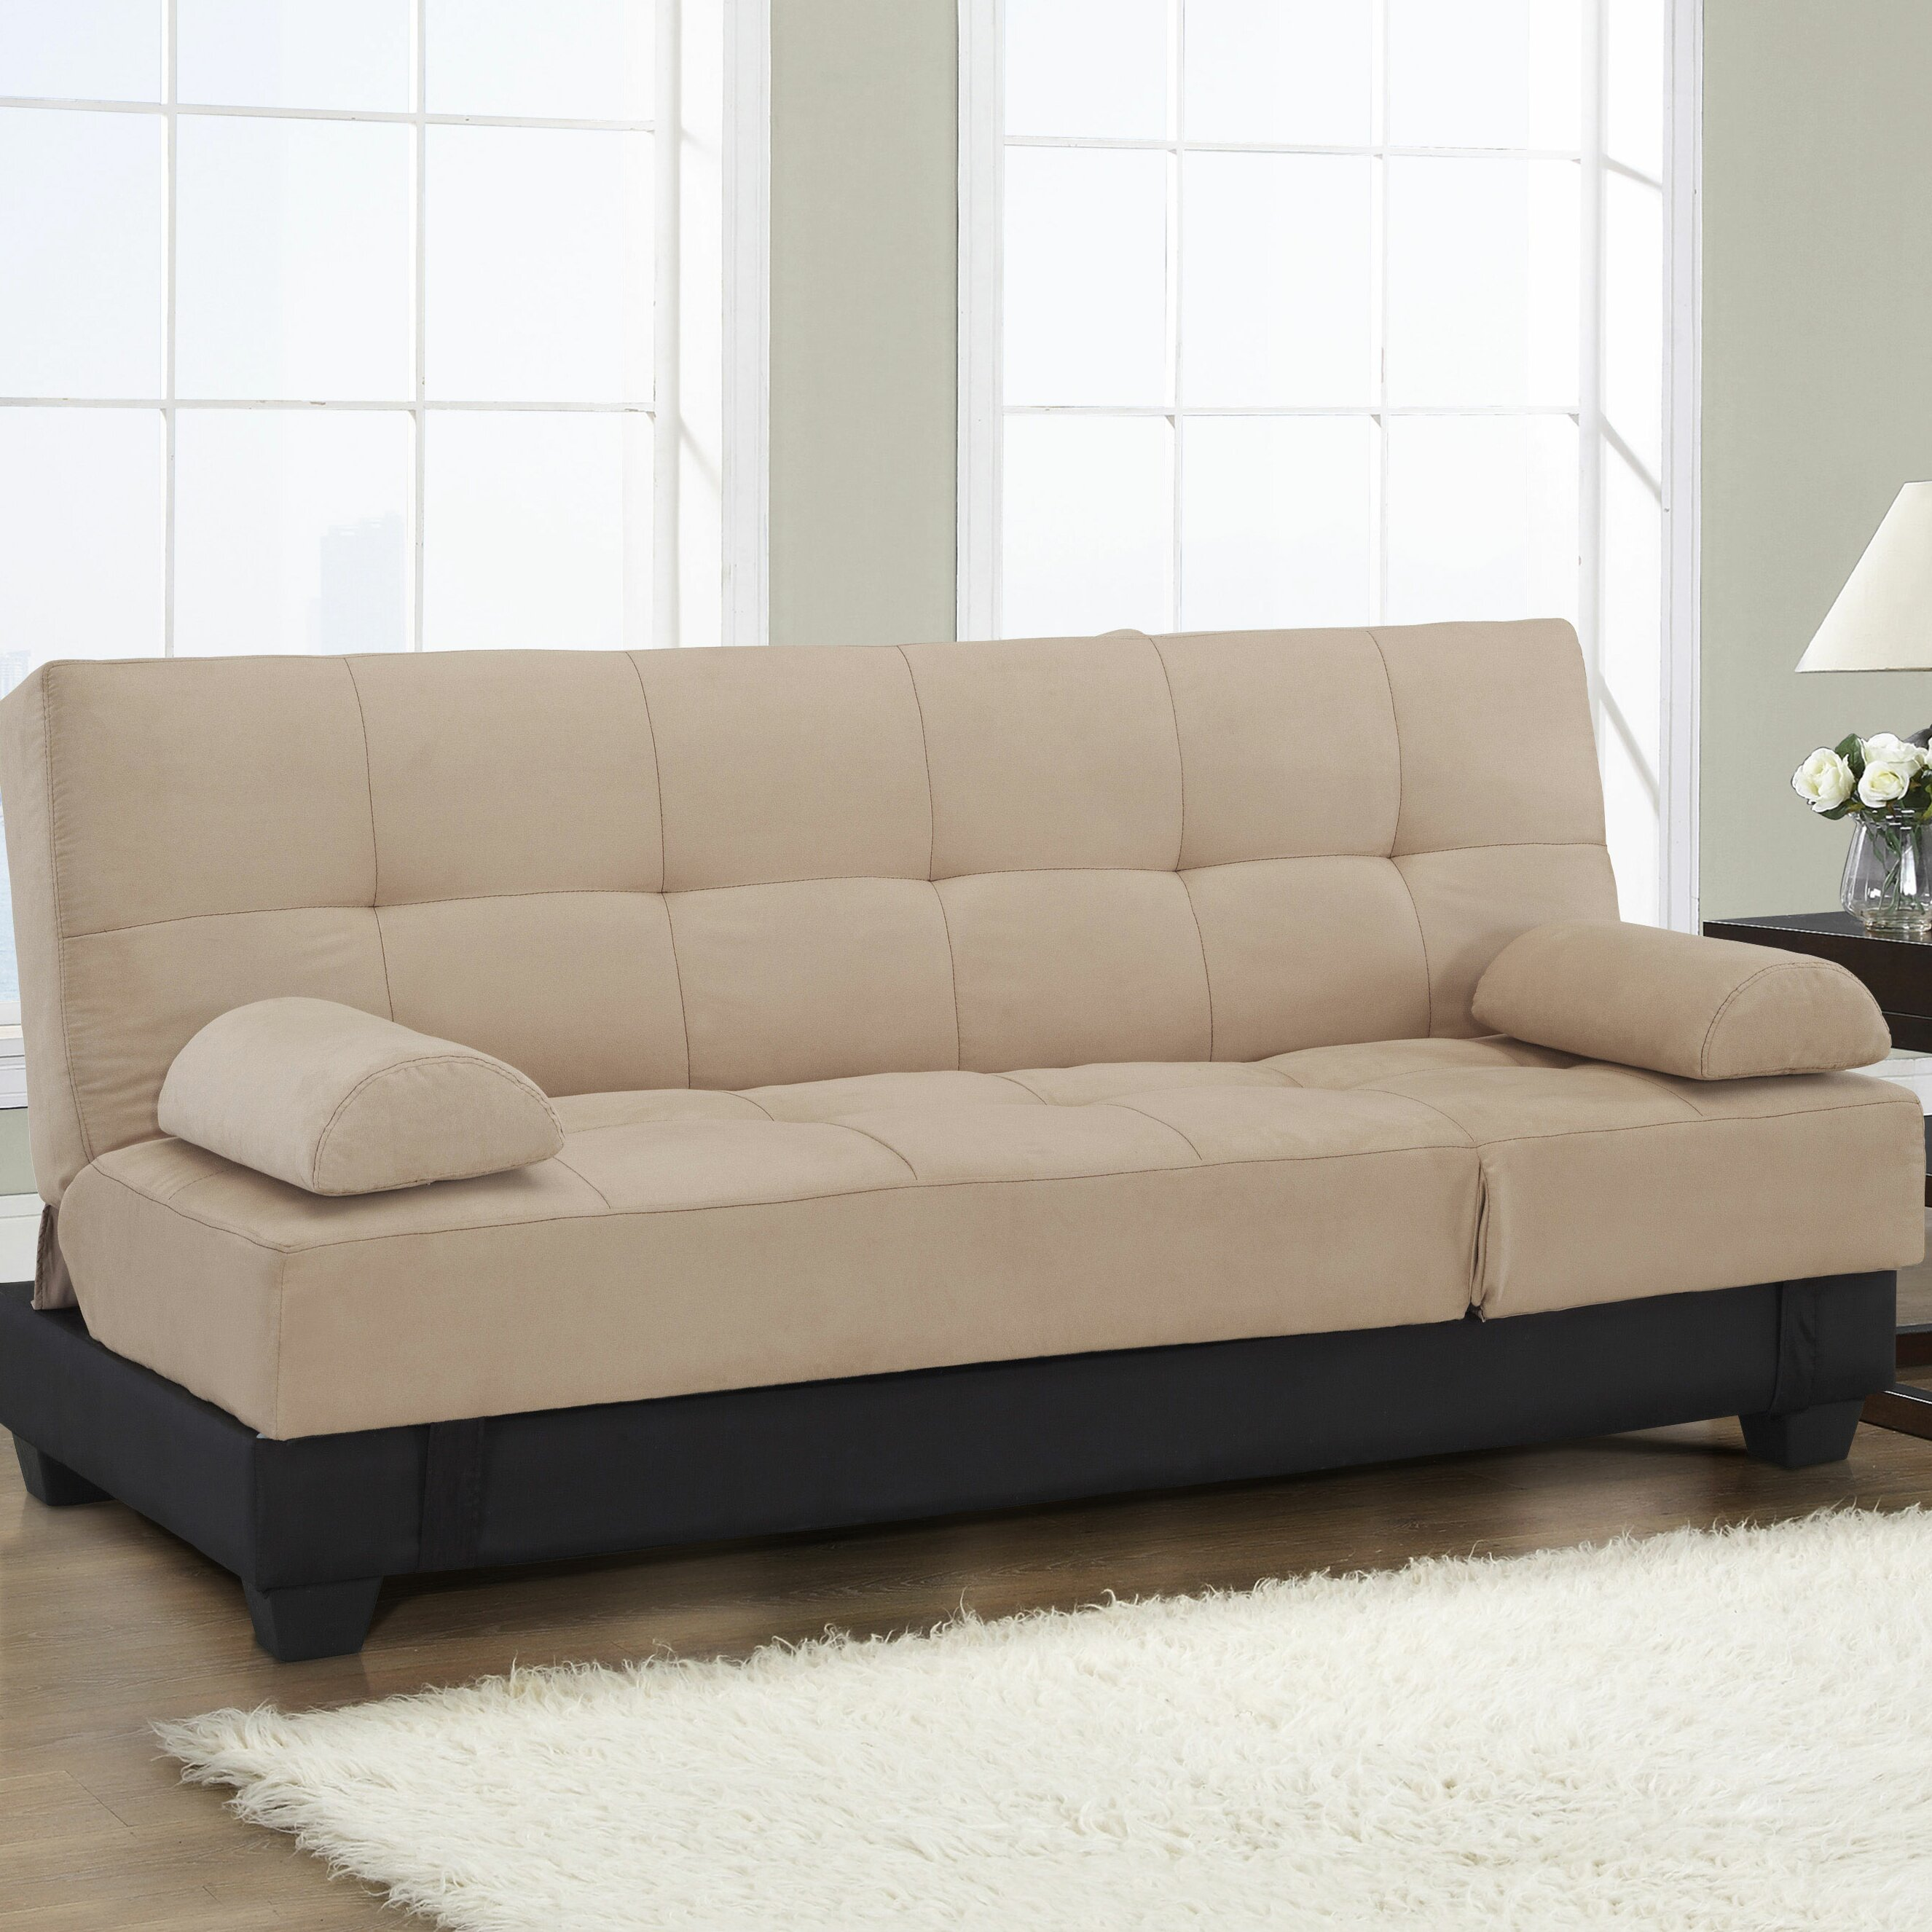 What Is The Difference Between A Sofa And A Couch: Latitude Run Convertible Sofa & Reviews